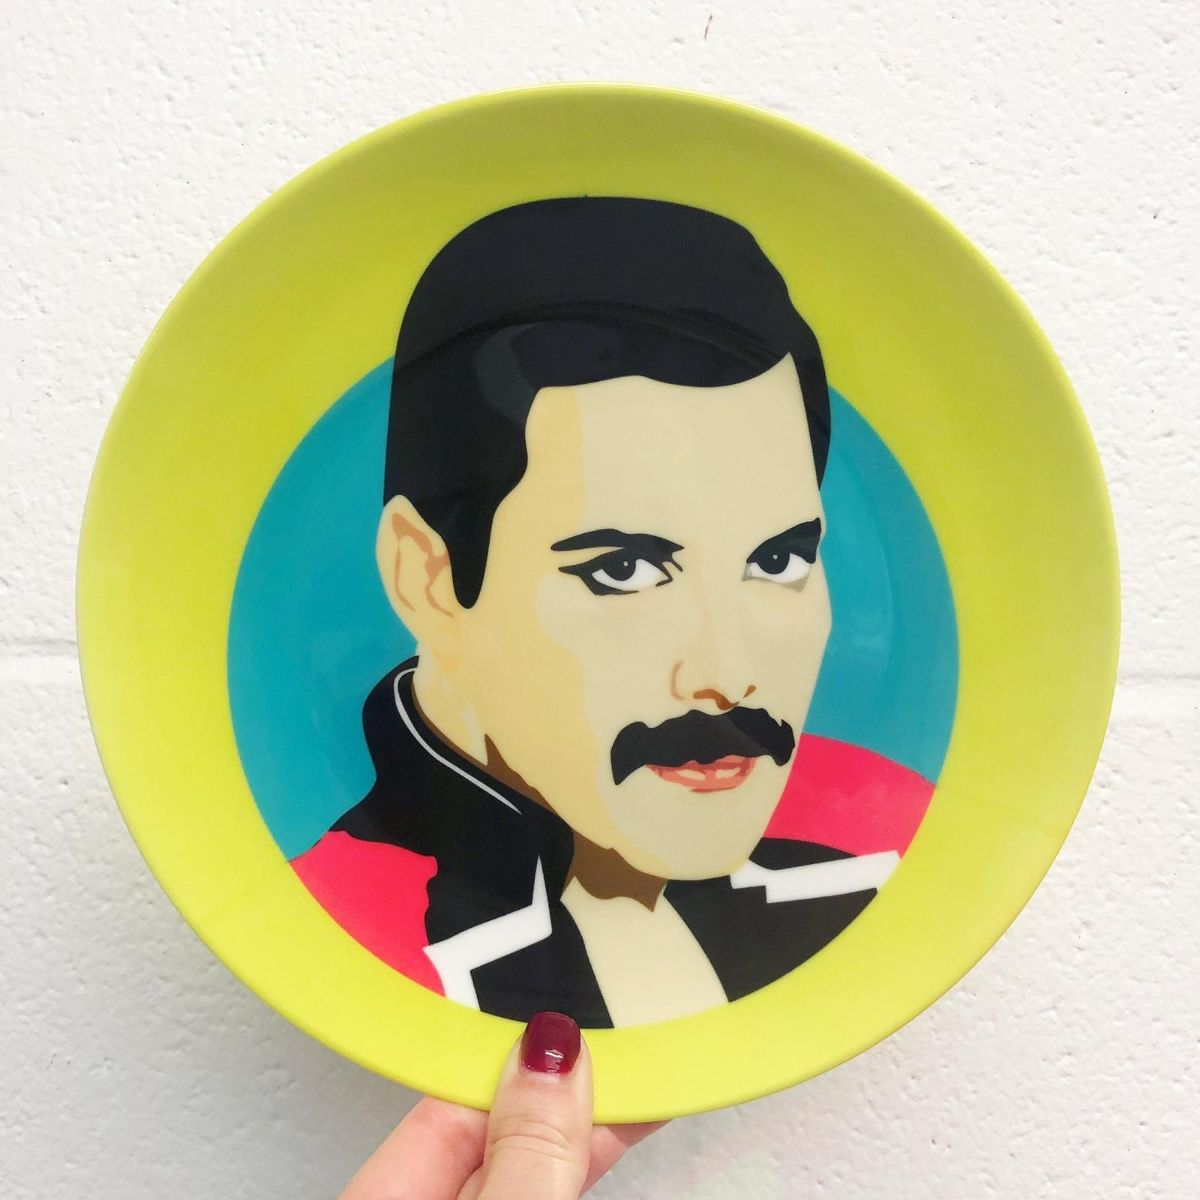 Freddie Mercury artwork - ceramics tableware